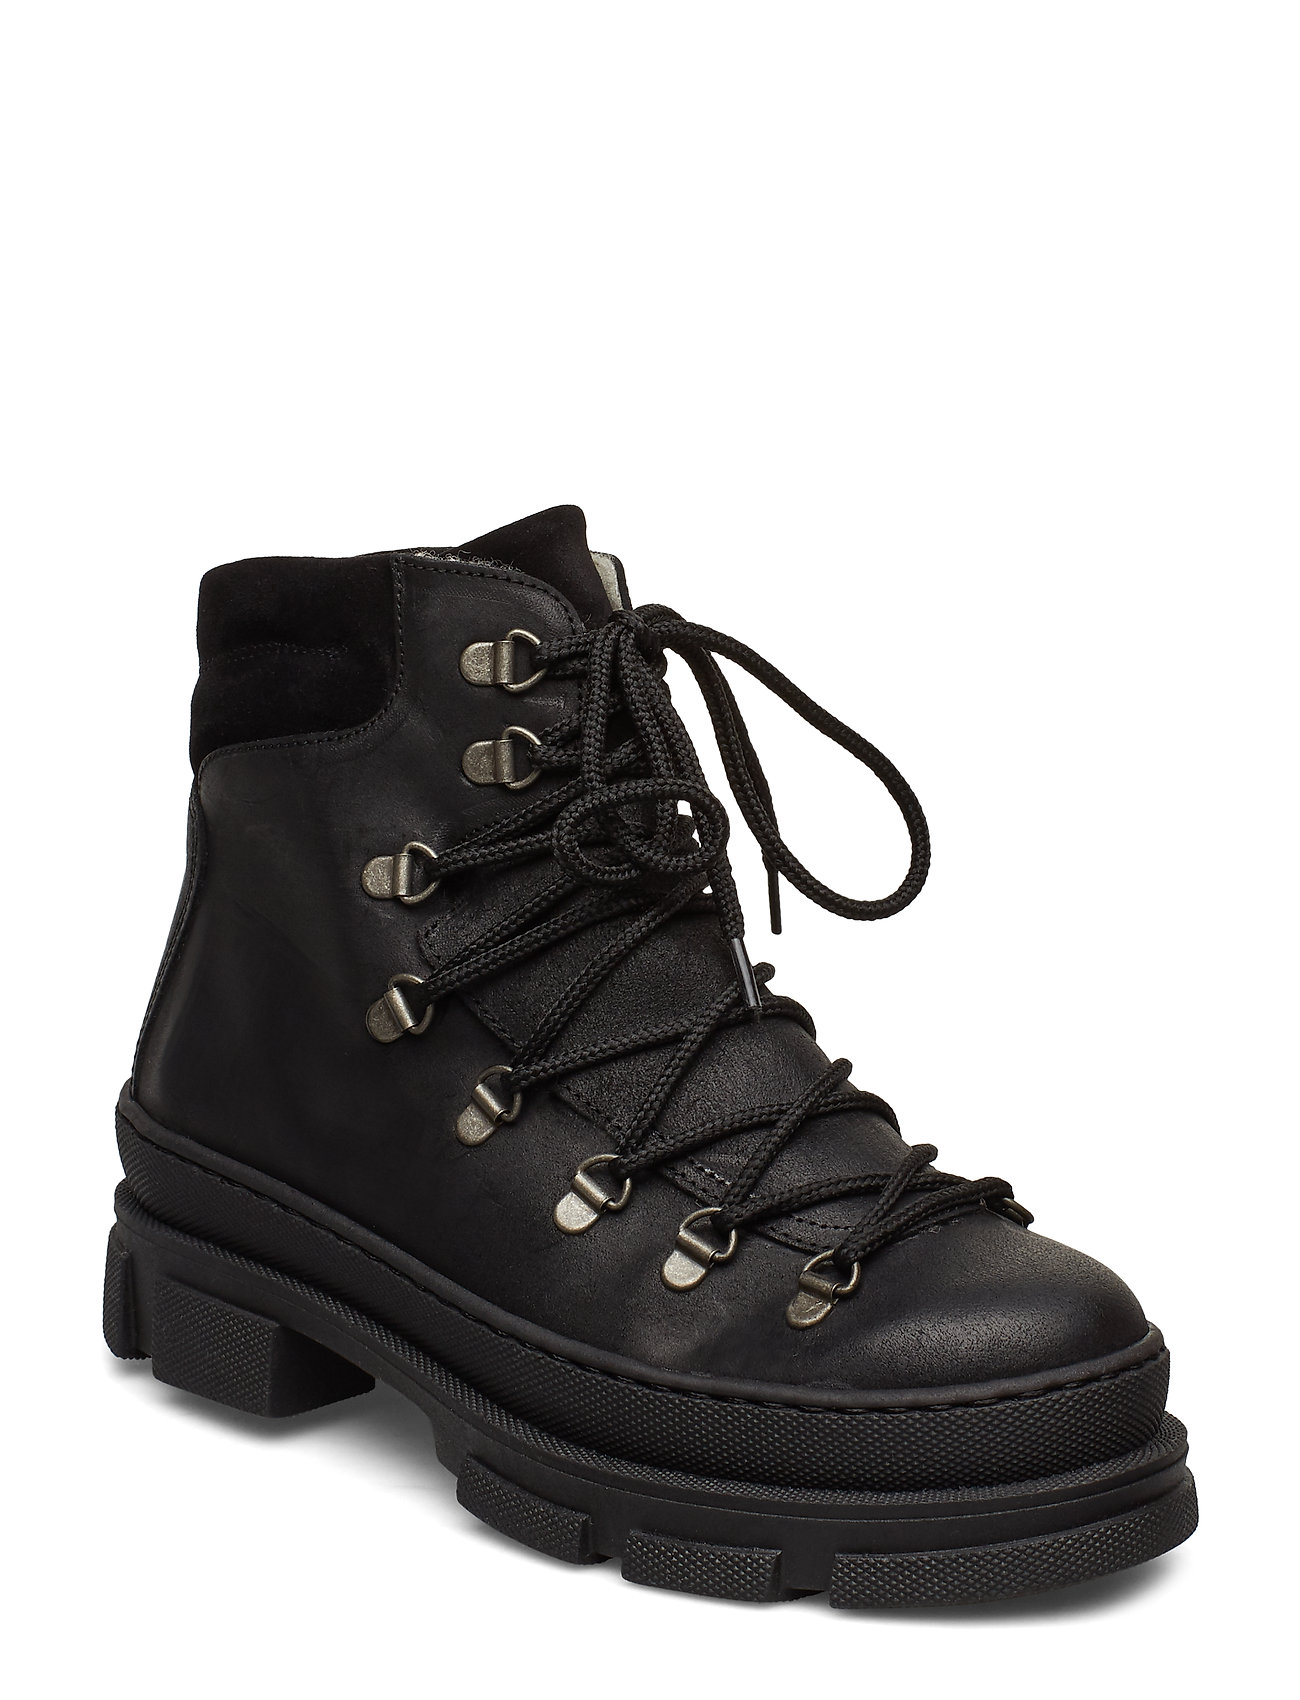 ANGULUS - Boots - flat - with laces - flade ankelstøvler - 2100/1163 black - 0